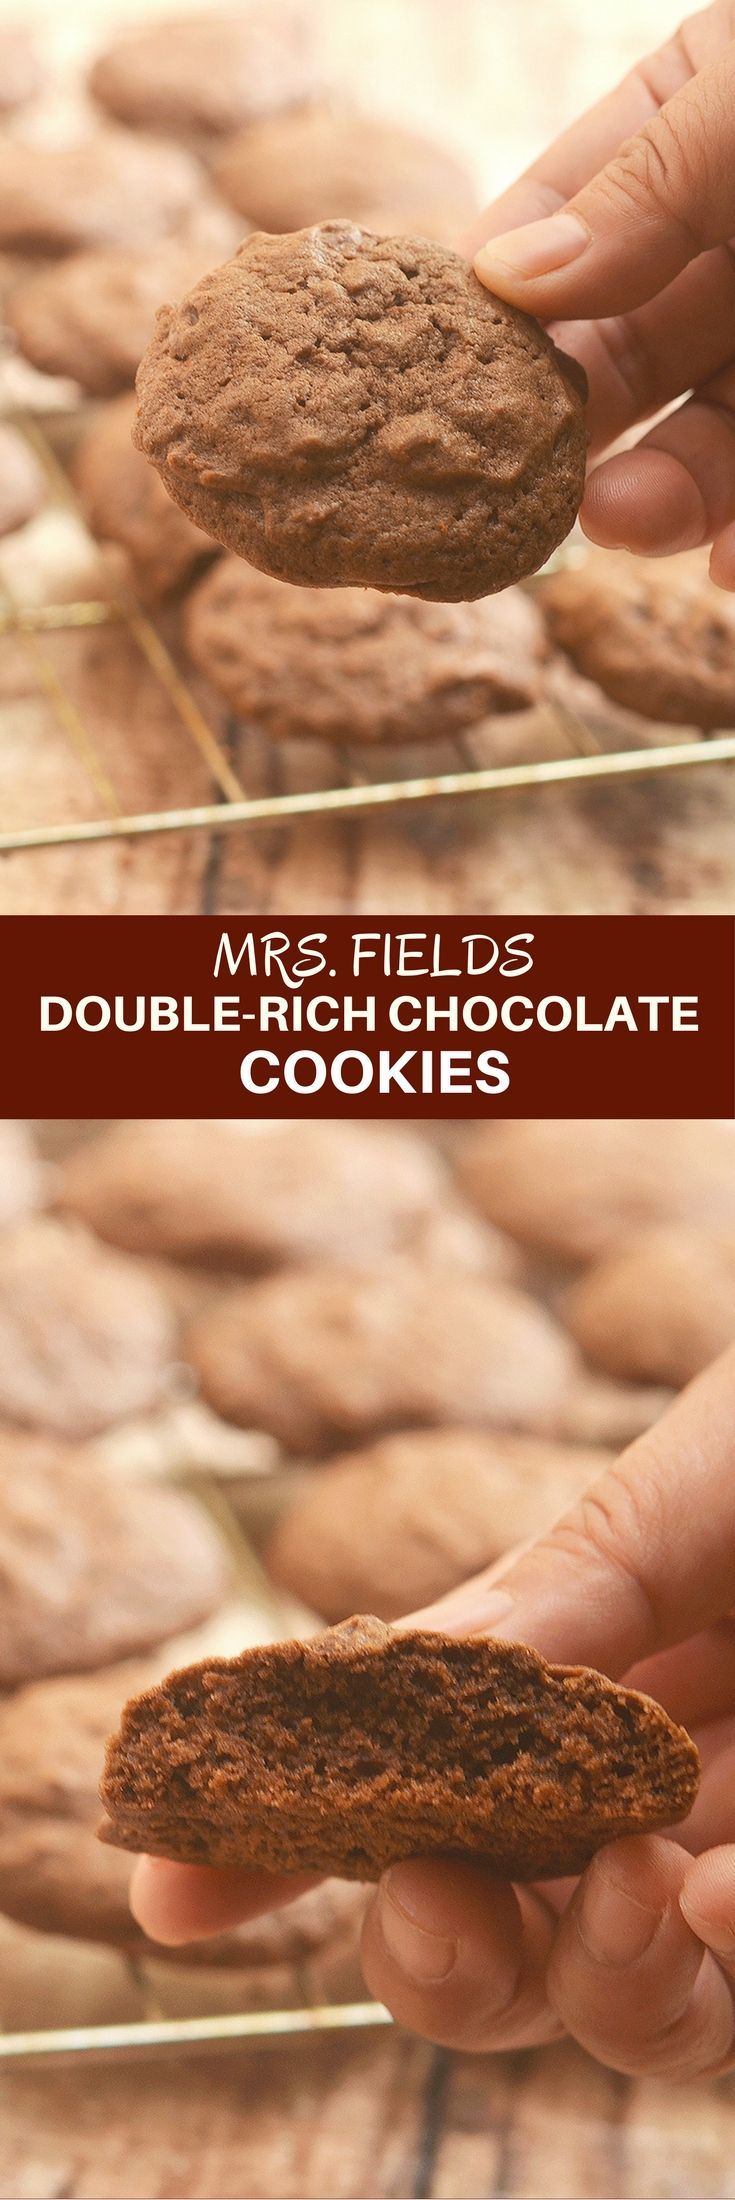 Mrs. Fields Double-Rich Chocolate Cookies are the ultimate cookie treat. Soft, fudgy, and packed with chocolate flavor, they're perfect for milk dunking. via @lalainespins